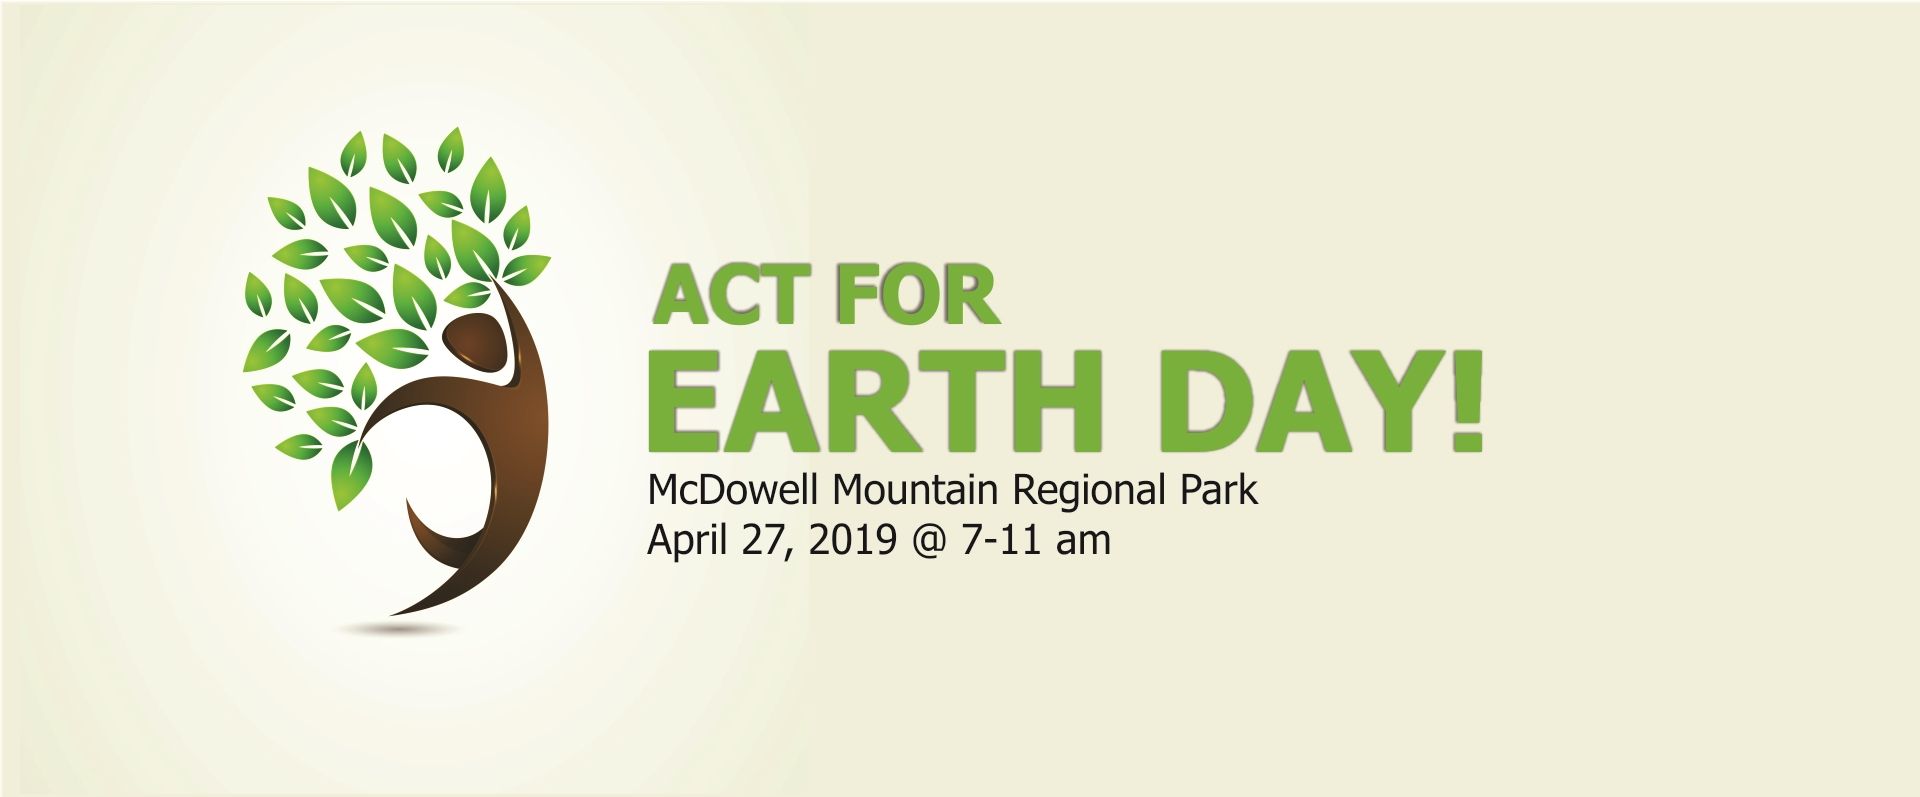 Act For Earth Day 2019